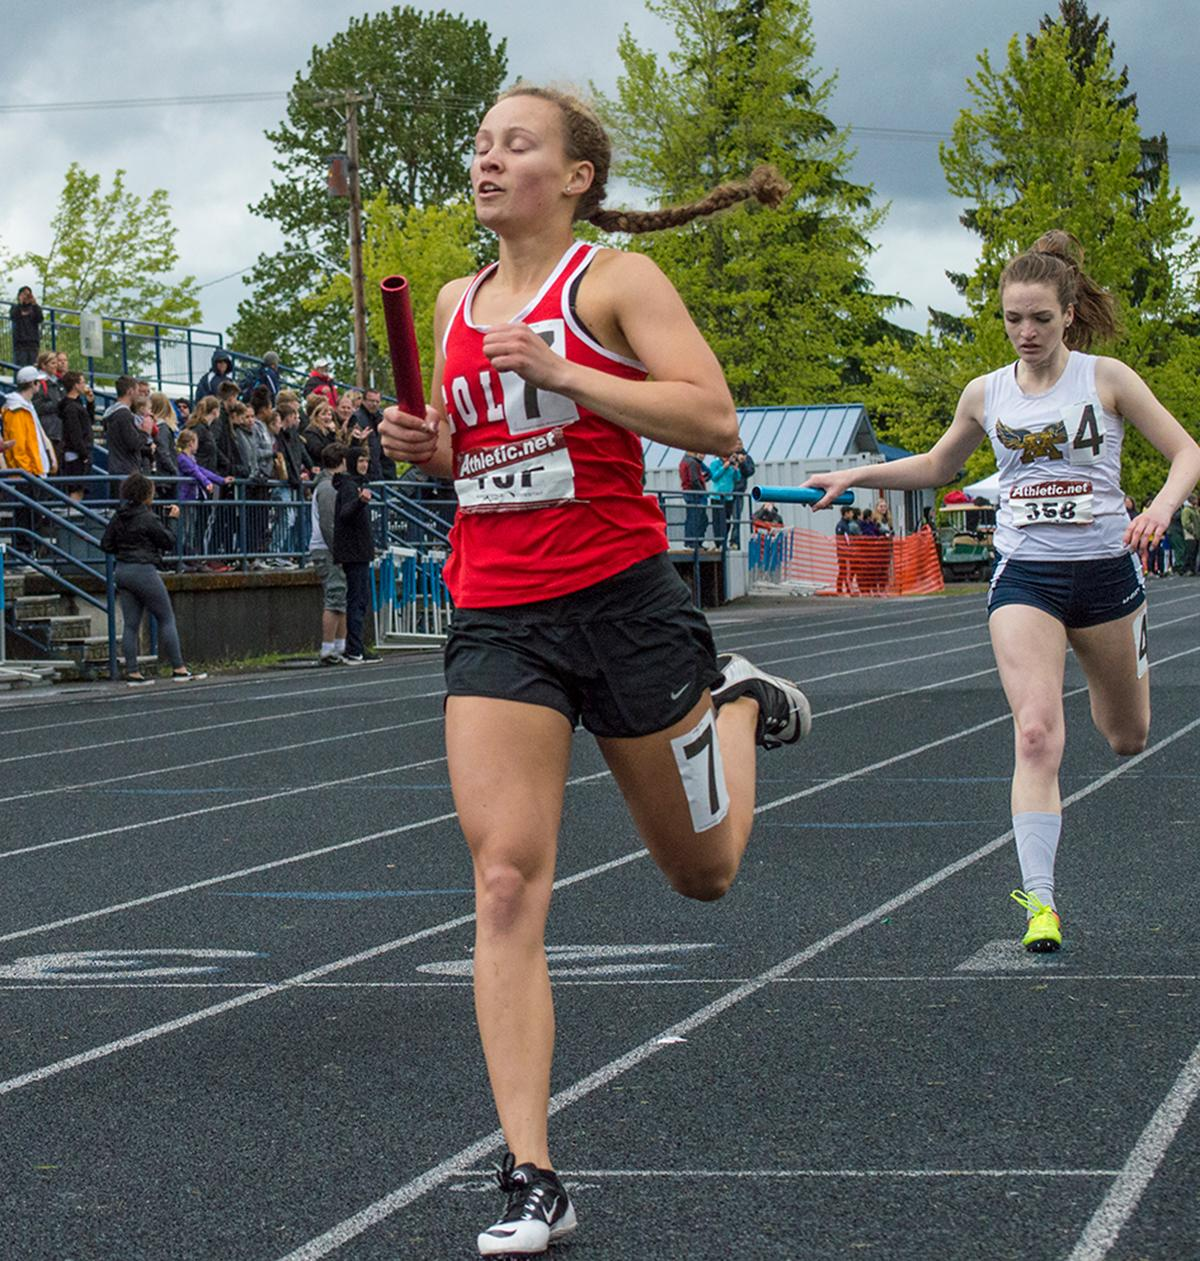 Anchor Tara Crosswhite crosses the finish line. The Colts take first in the Women's 4 x 400m event at the 5A-3 Midwestern League District Championship with a time of 4:10.75. Photo by Emily Gonzalez, Oregon News Lab.